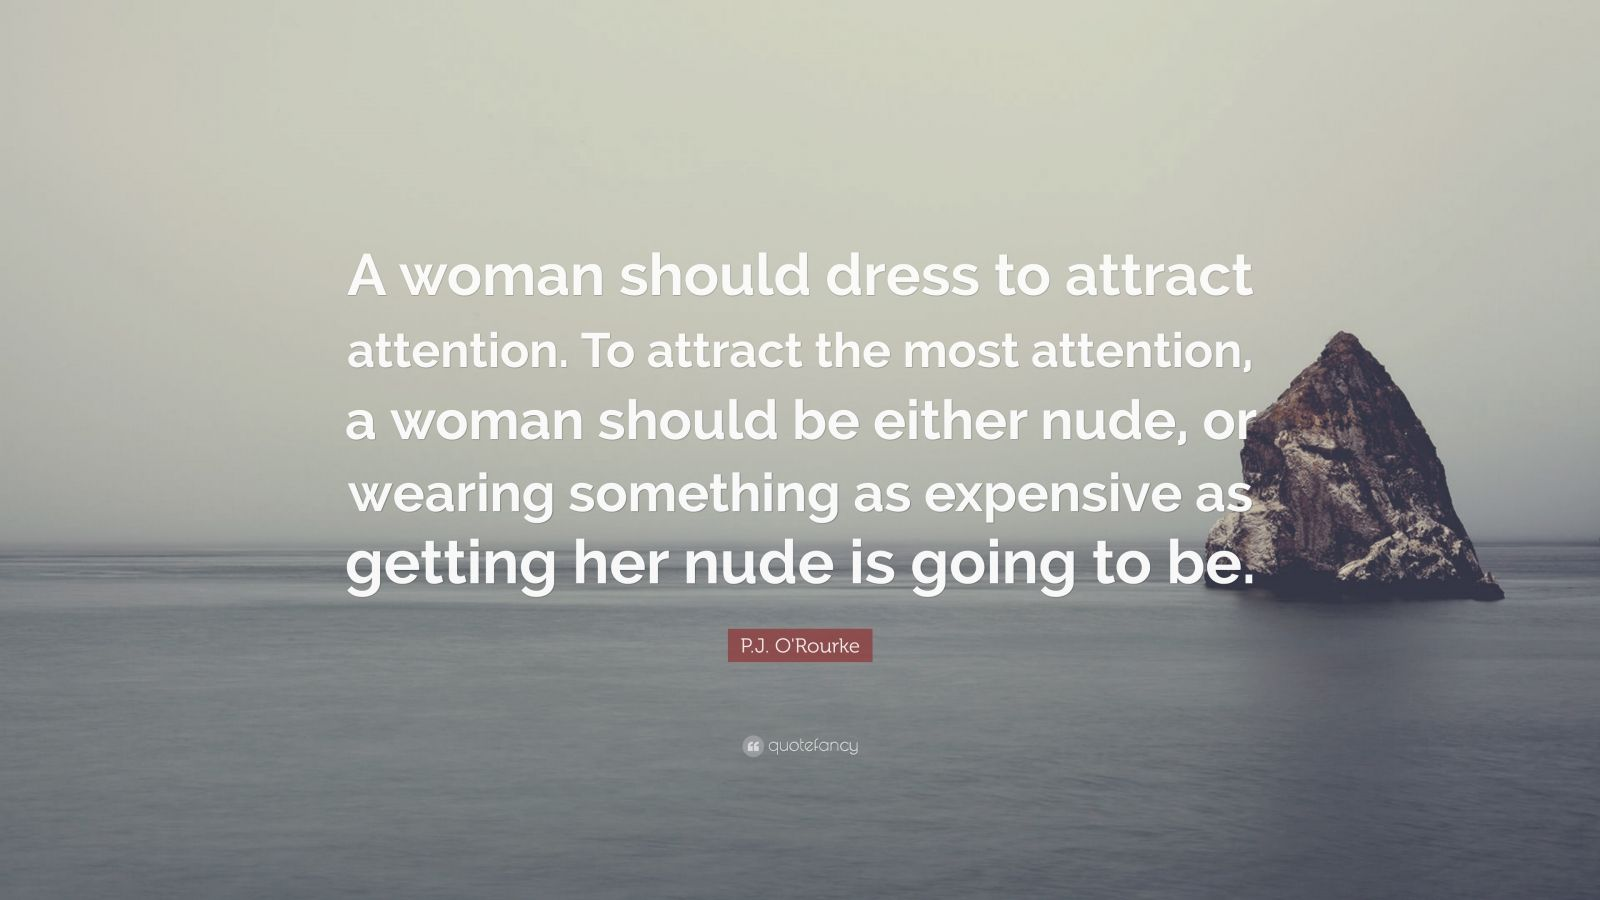 """P.J. O'Rourke Quote: """"A woman should dress to attract attention. To attract the most attention, a woman should be either nude, or wearing something as expensive as getting her nude is going to be."""""""